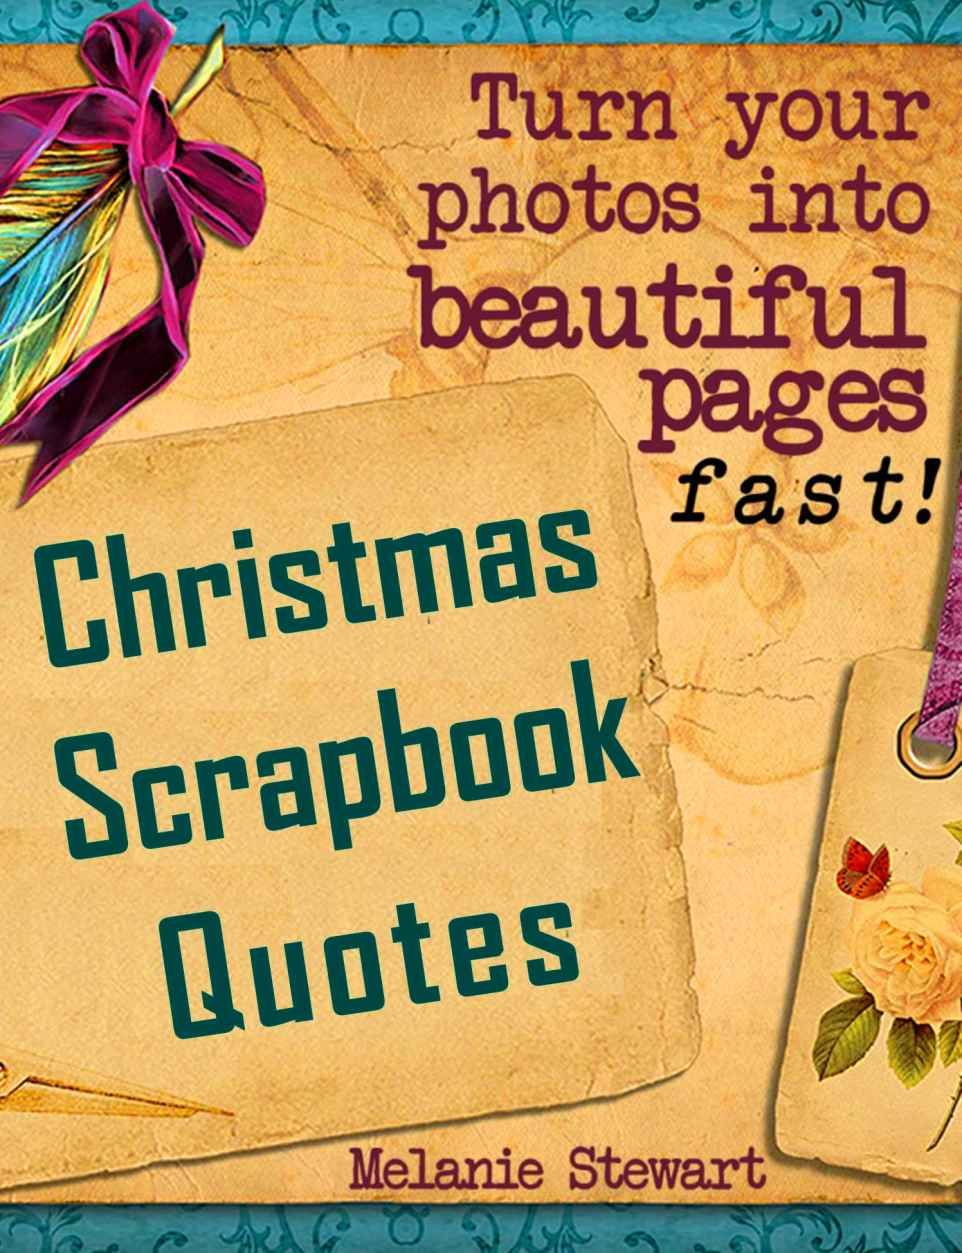 Christmas scrapbook quotes beautiful scrapbook pages fast